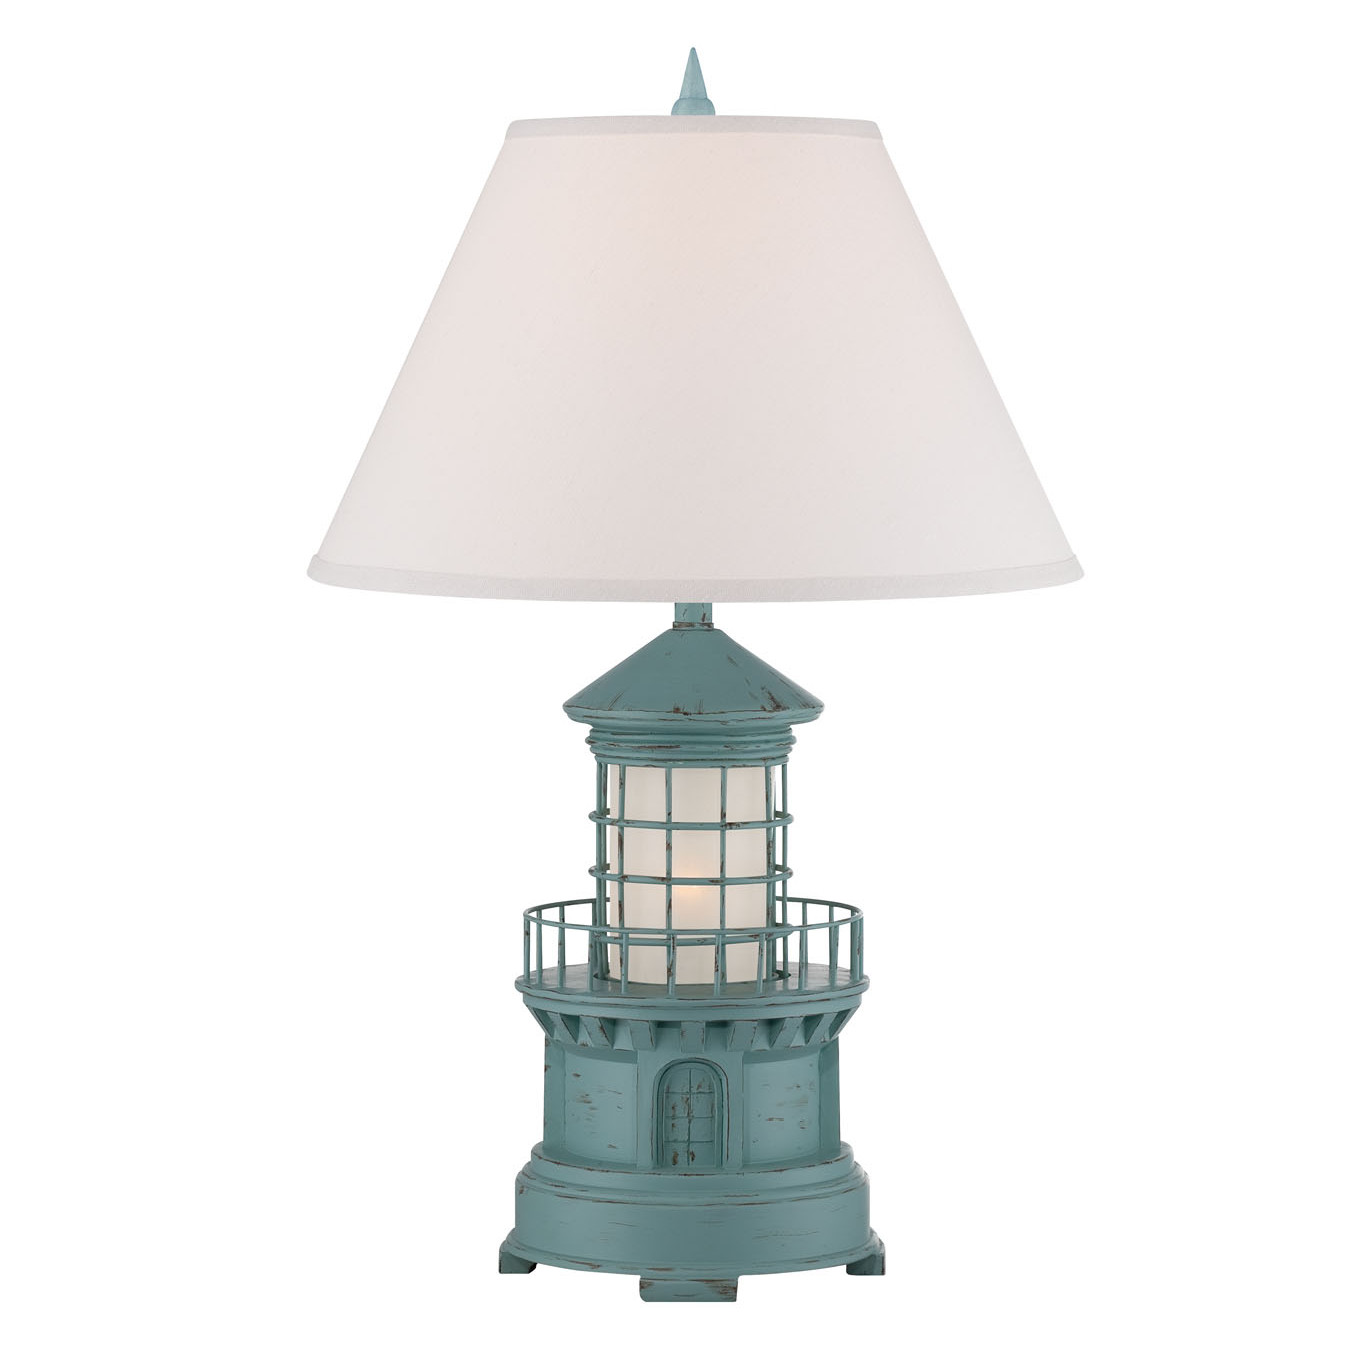 Bring The Beach Lamps To Illuminate Your Night At The